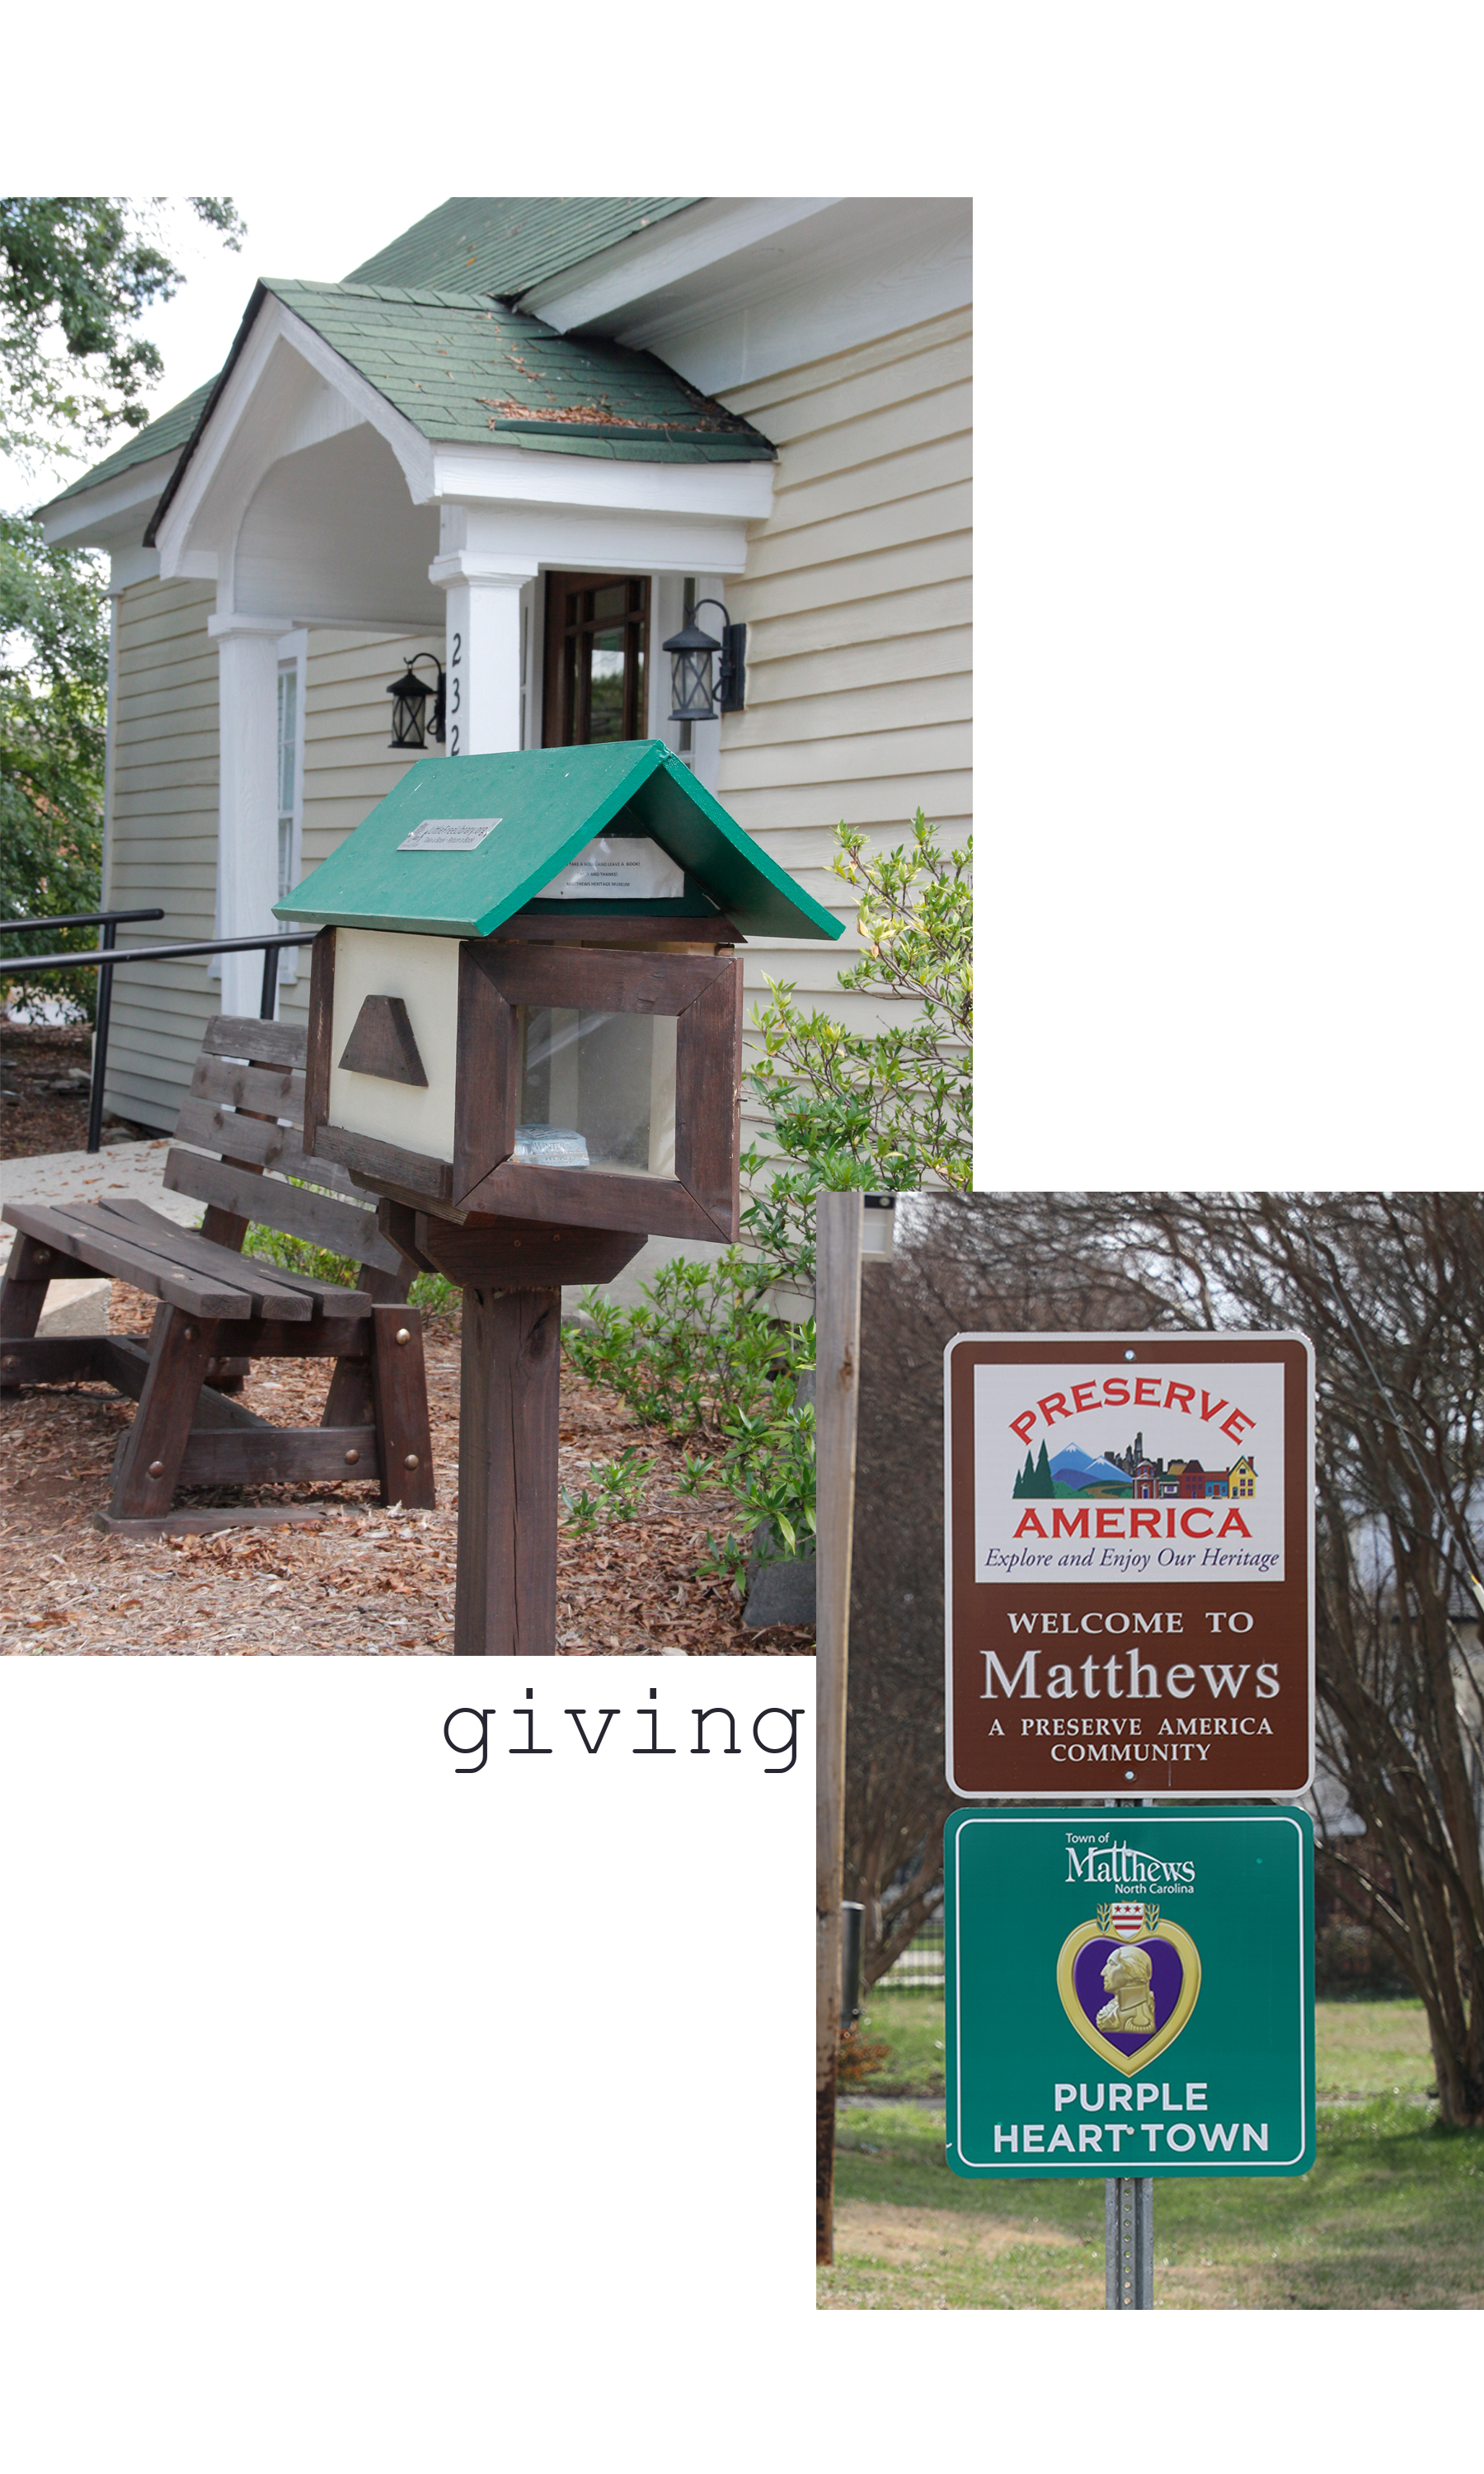 Matthews is Giving. With hundreds of nonprofits in Matthews, the support for philanthropy is significant. -